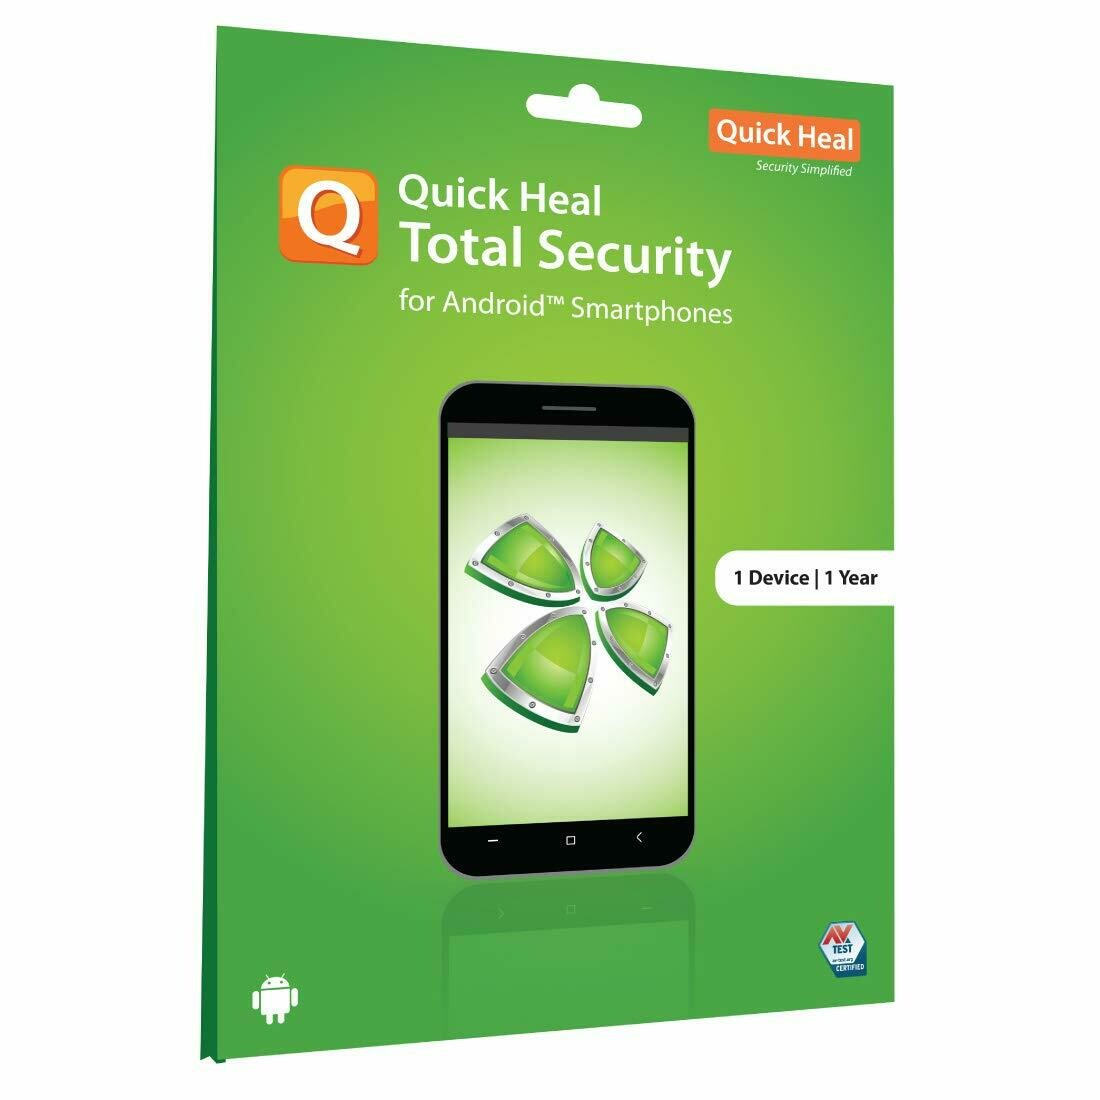 Quick Heal Total Security for Android